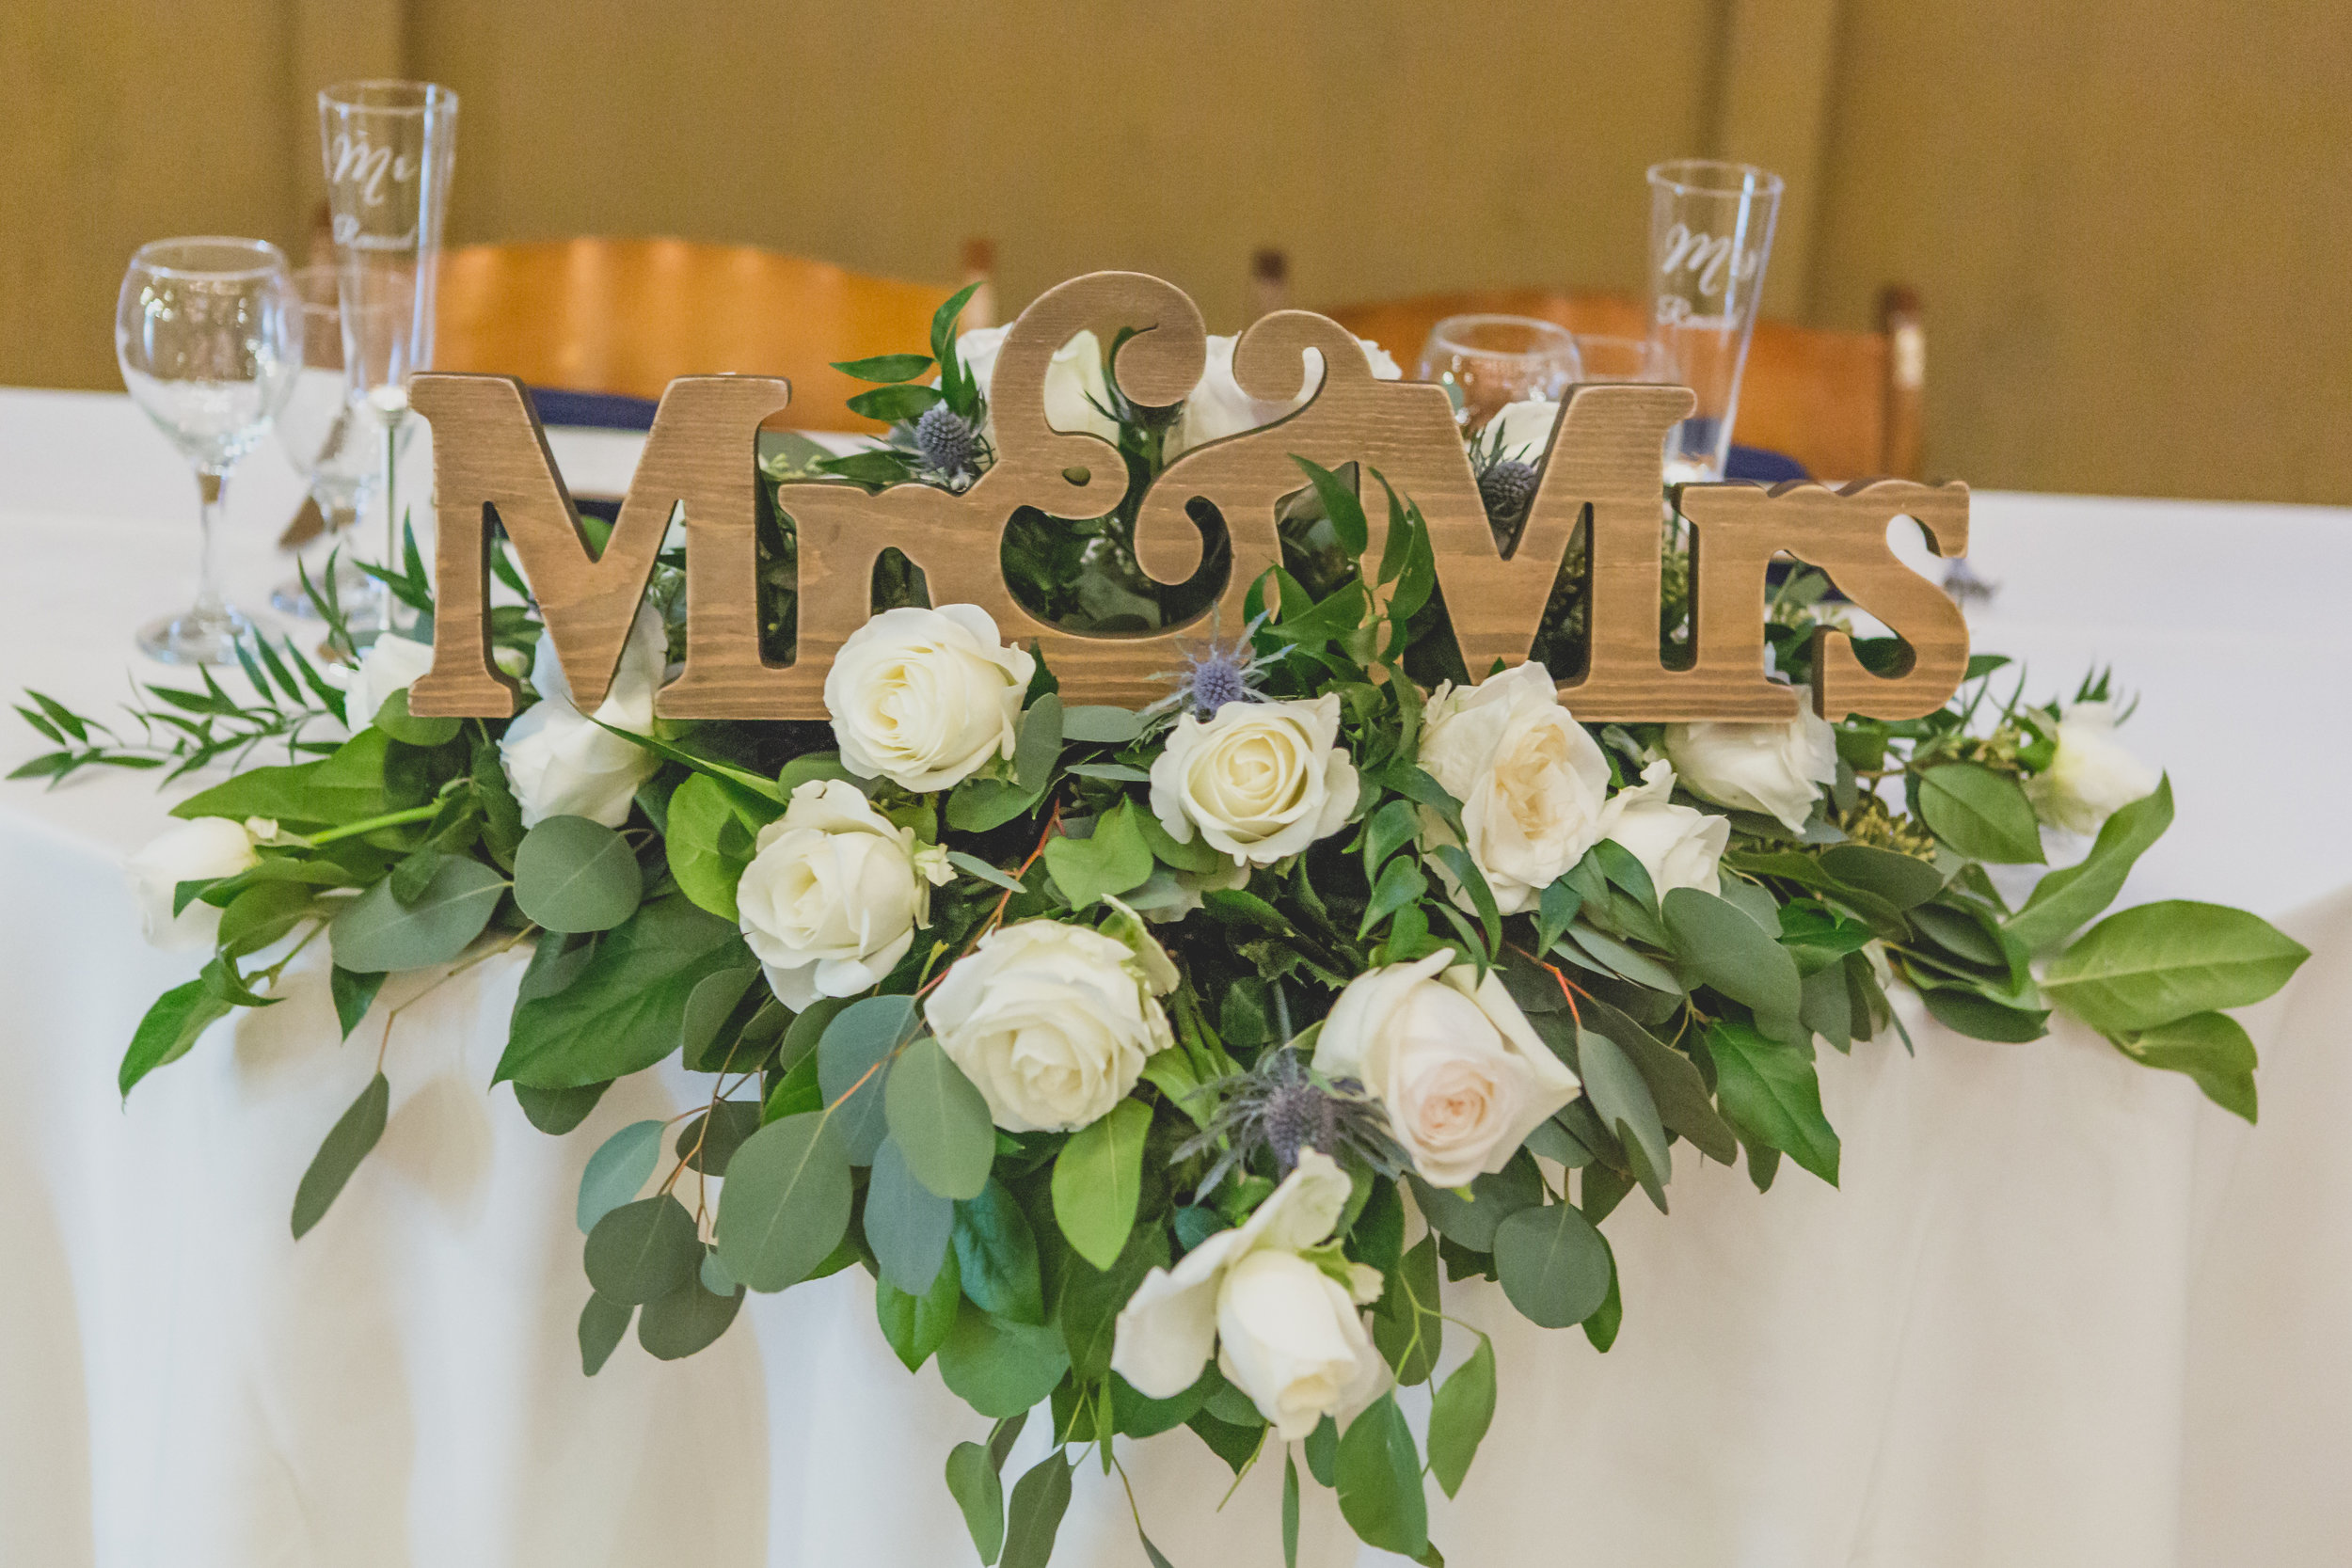 White roses in a lush green arrangement under a Mr. & Mrs. wooden sign.